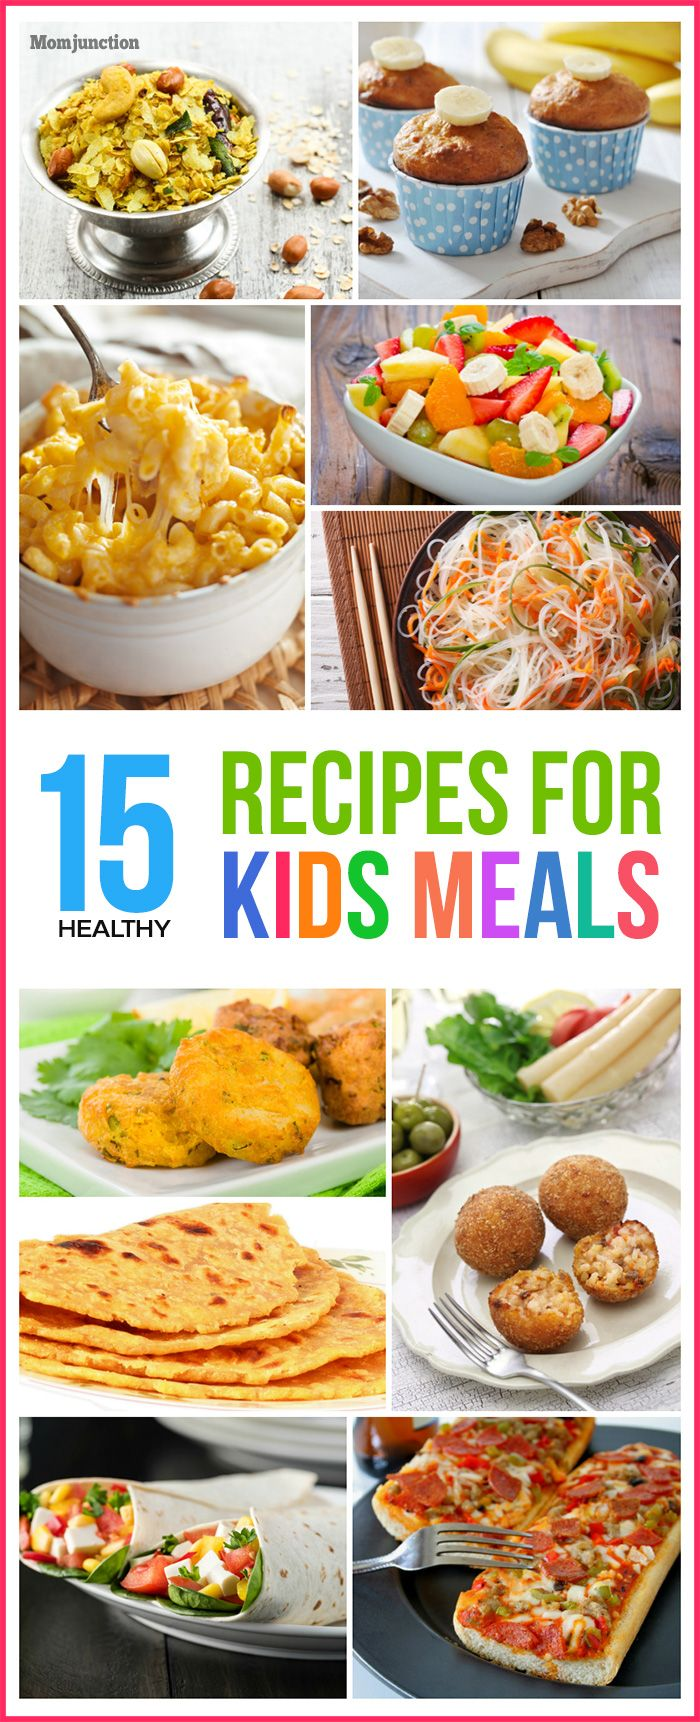 Easy Recipes Kids Can Help Make | Martha Stewart